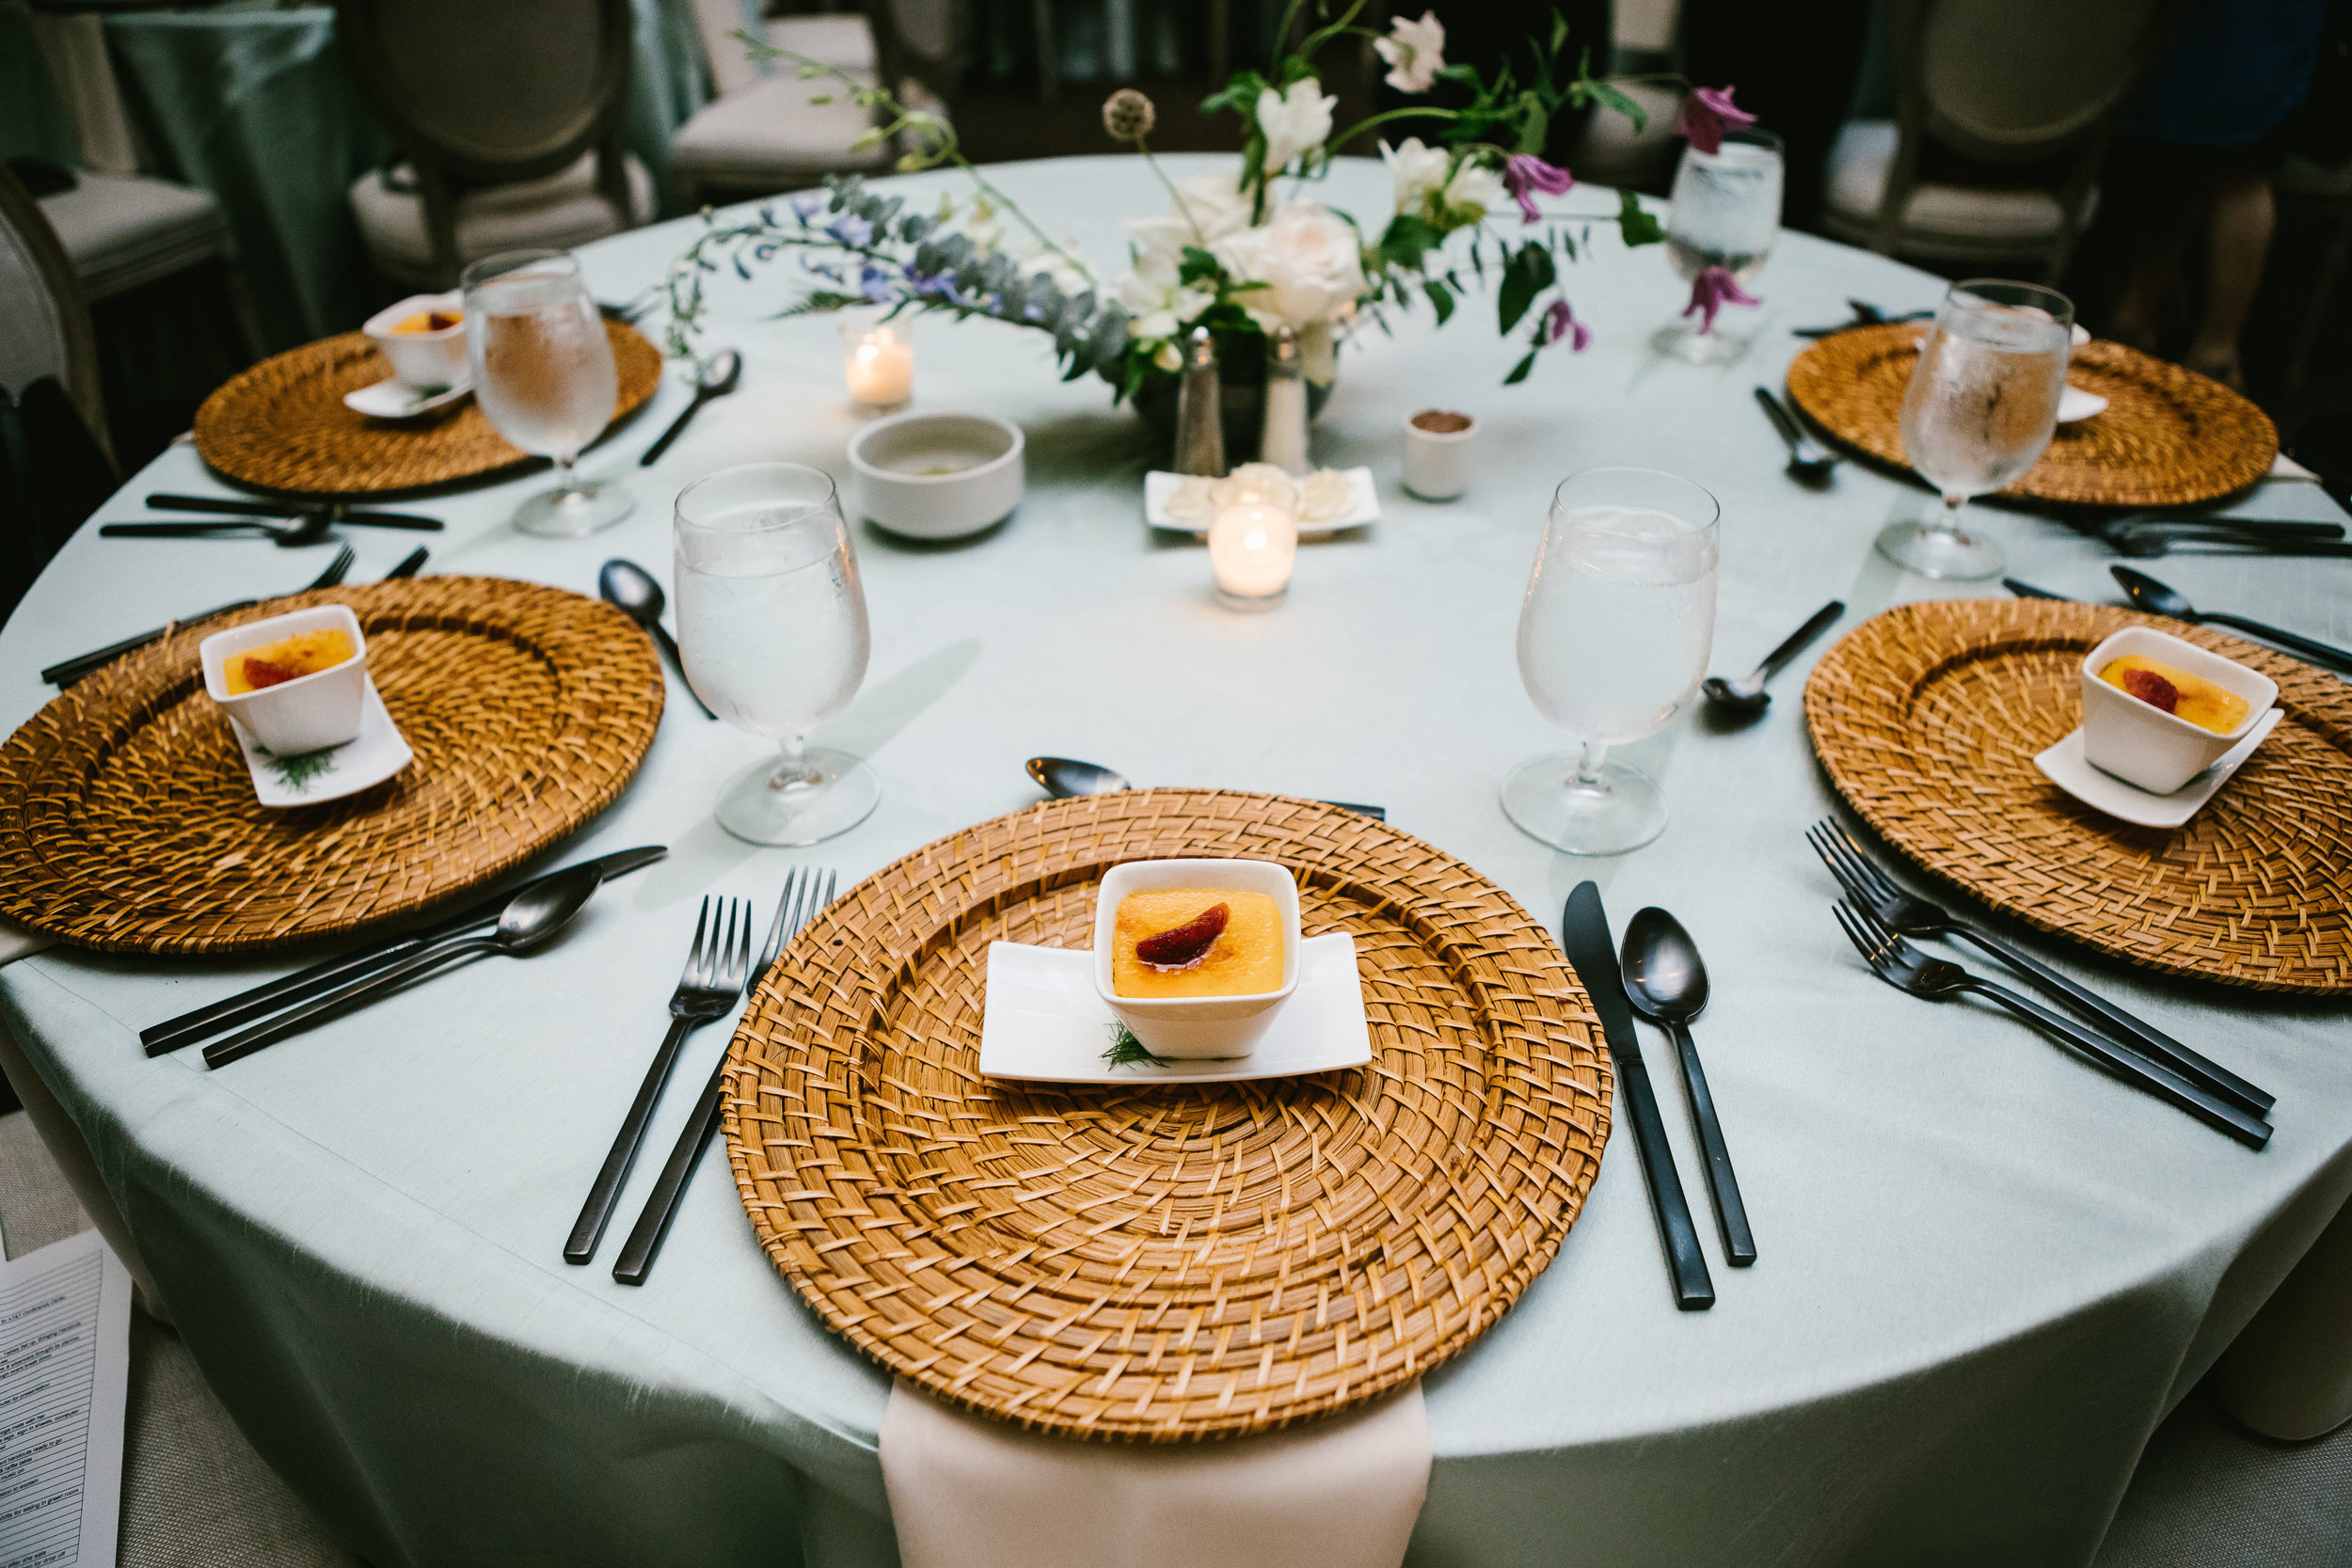 table settings and amuse bouche by Rosemary's Catering for corporate event in downtown Austin, TX